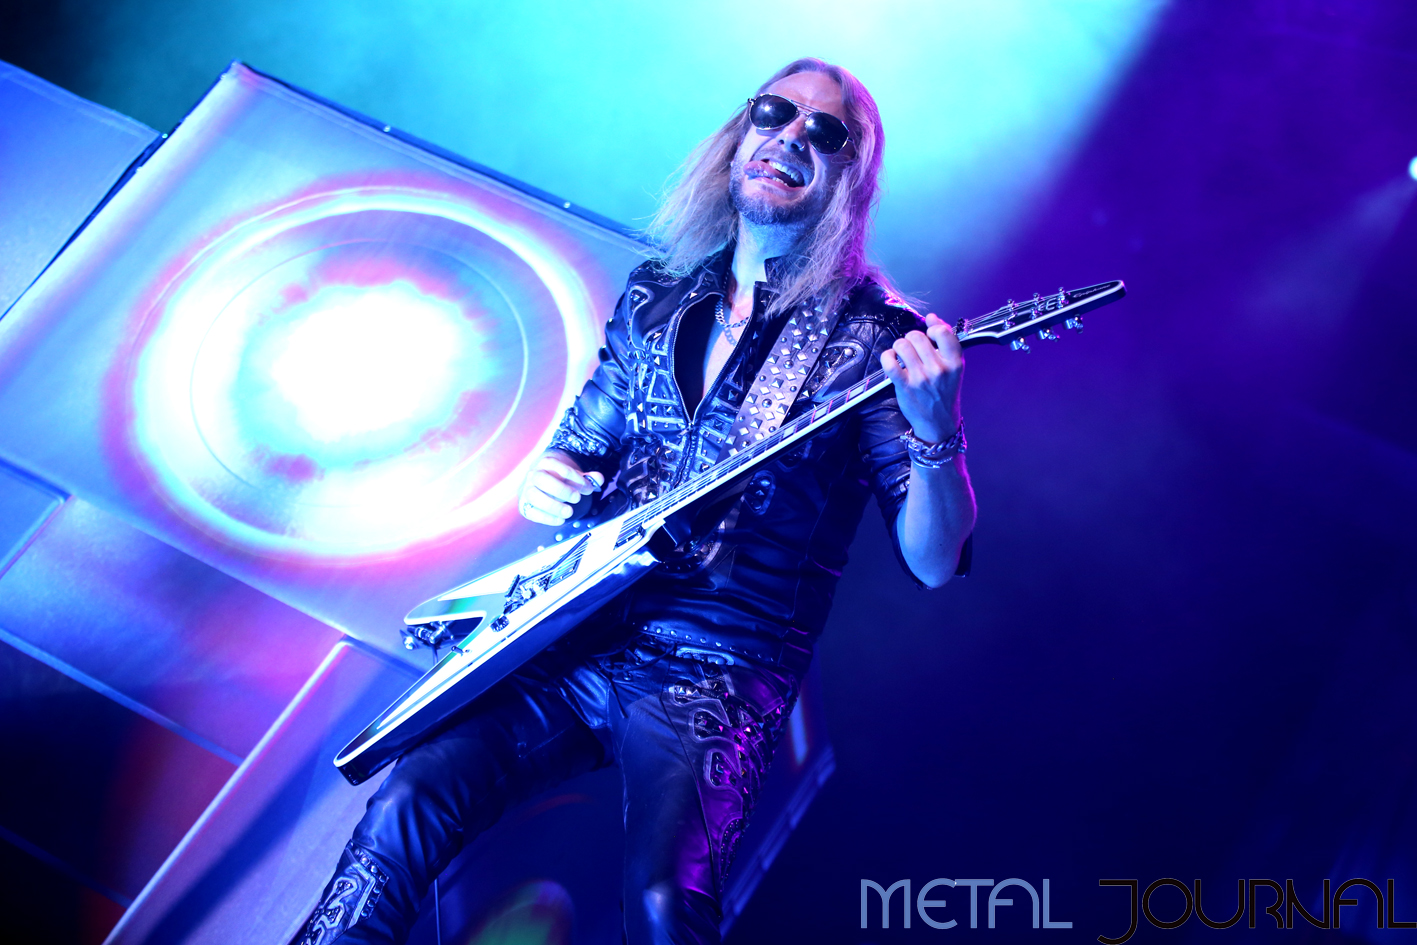 judas priest - metal journal barakaldo 2018 pic 6